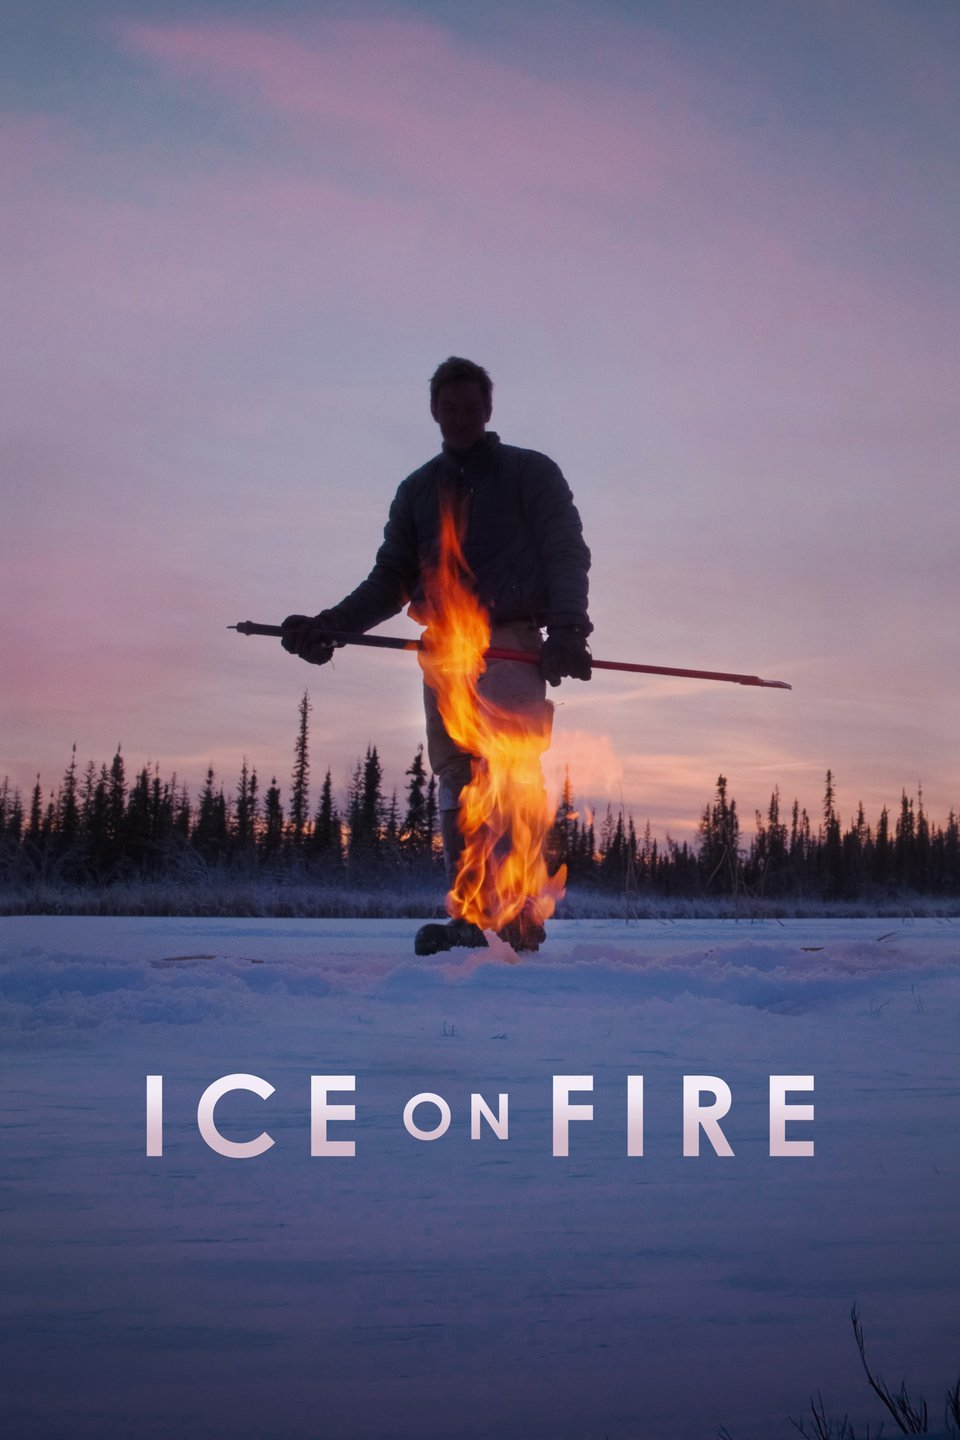 Movie Poster Ice on Fire